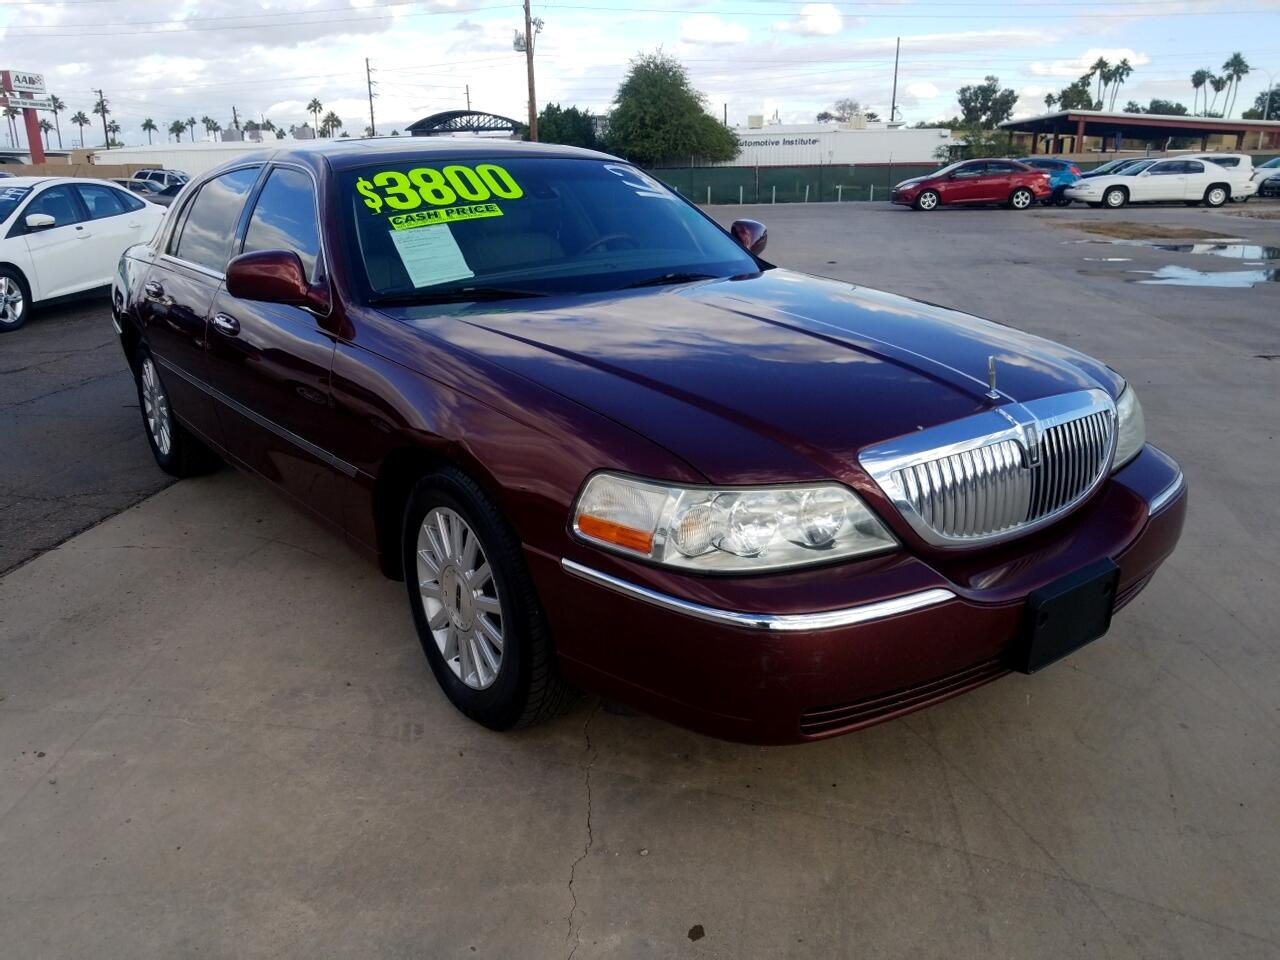 Used 2003 Lincoln Town Car For Sale In Glendale Az 85301 New Deal